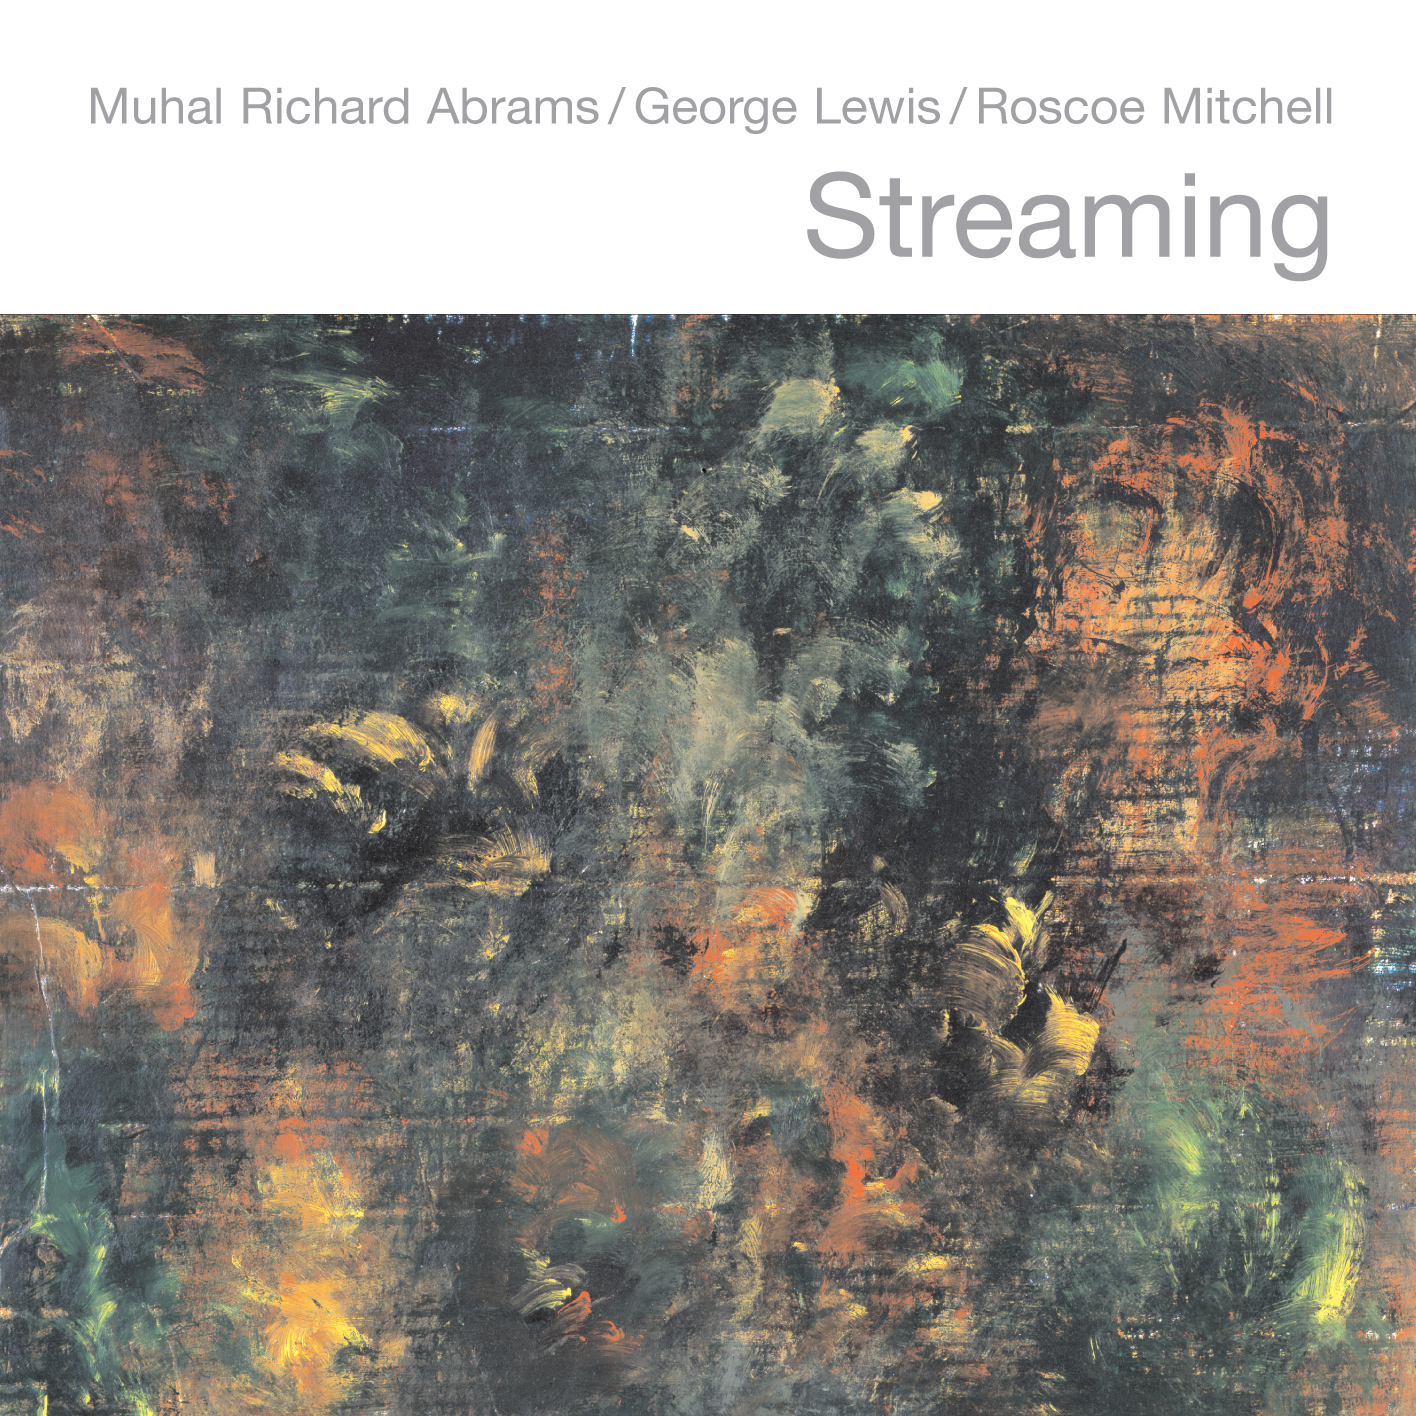 Streaming - Muhal Richard Abrams, George Lewis & Roscoe Mitchell